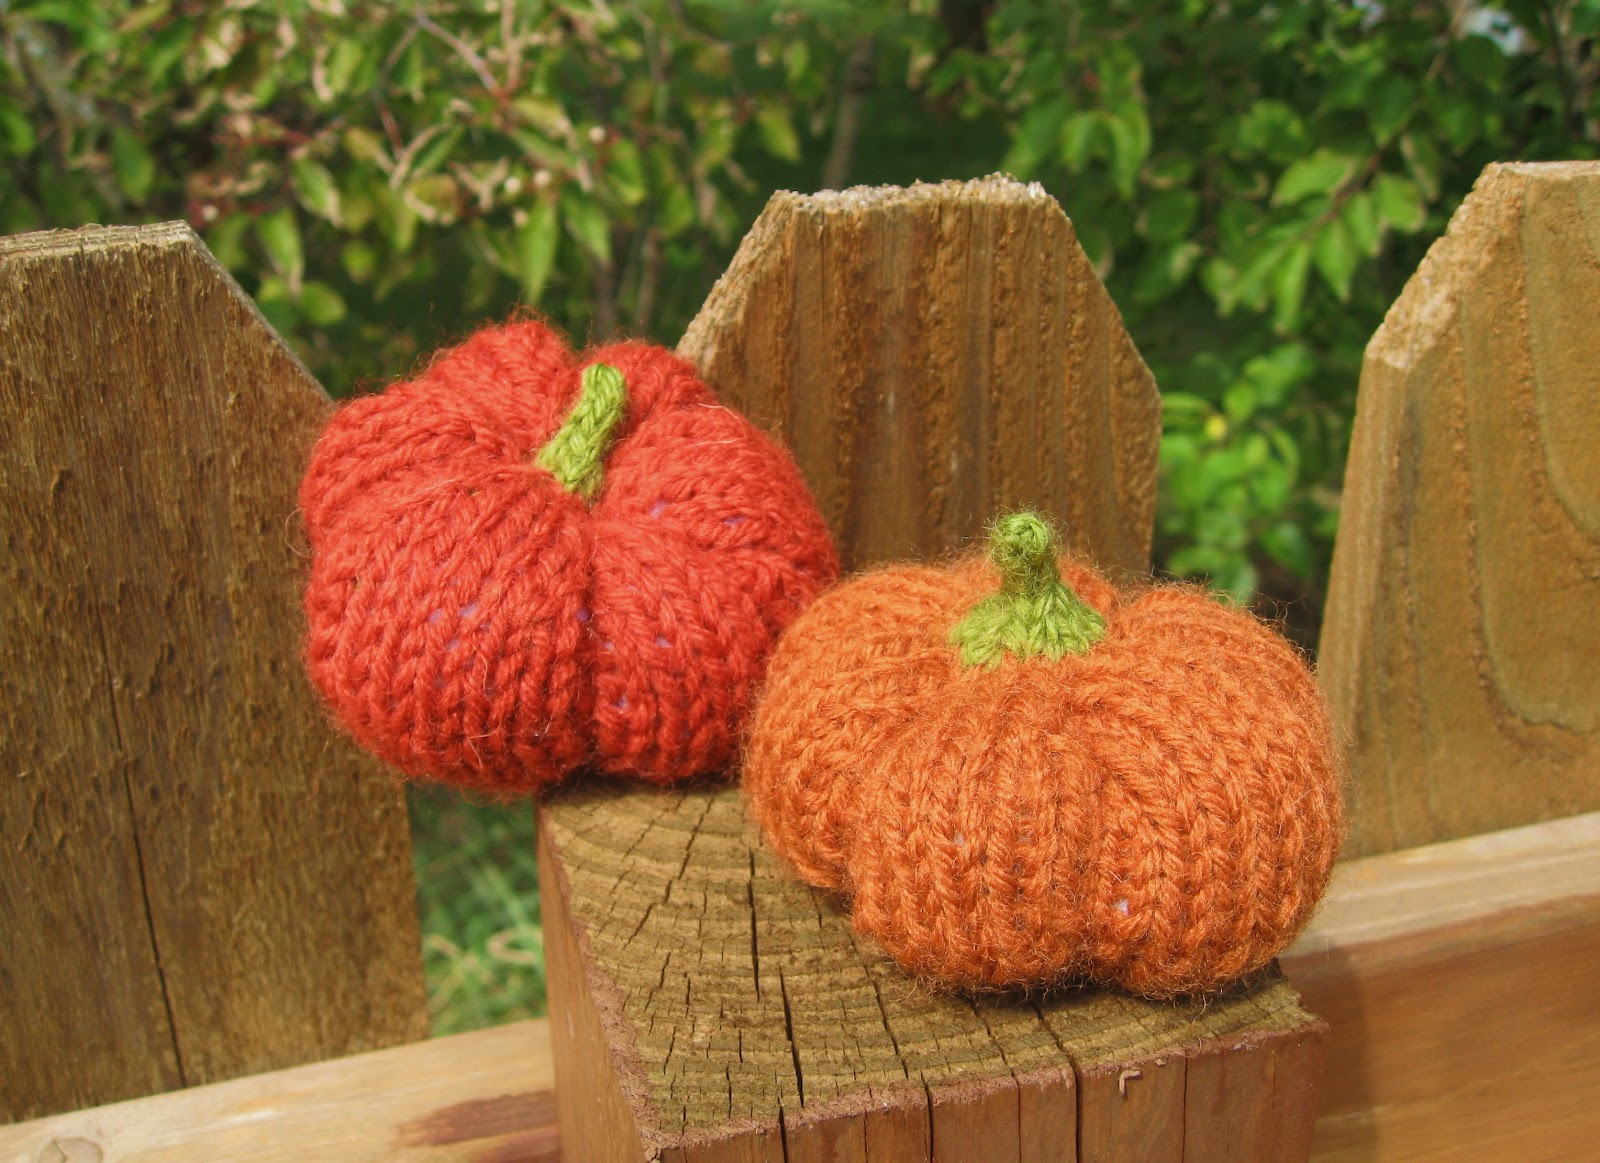 megan E sass handknits: Knitting Pattern: Little Fall Pumpkin